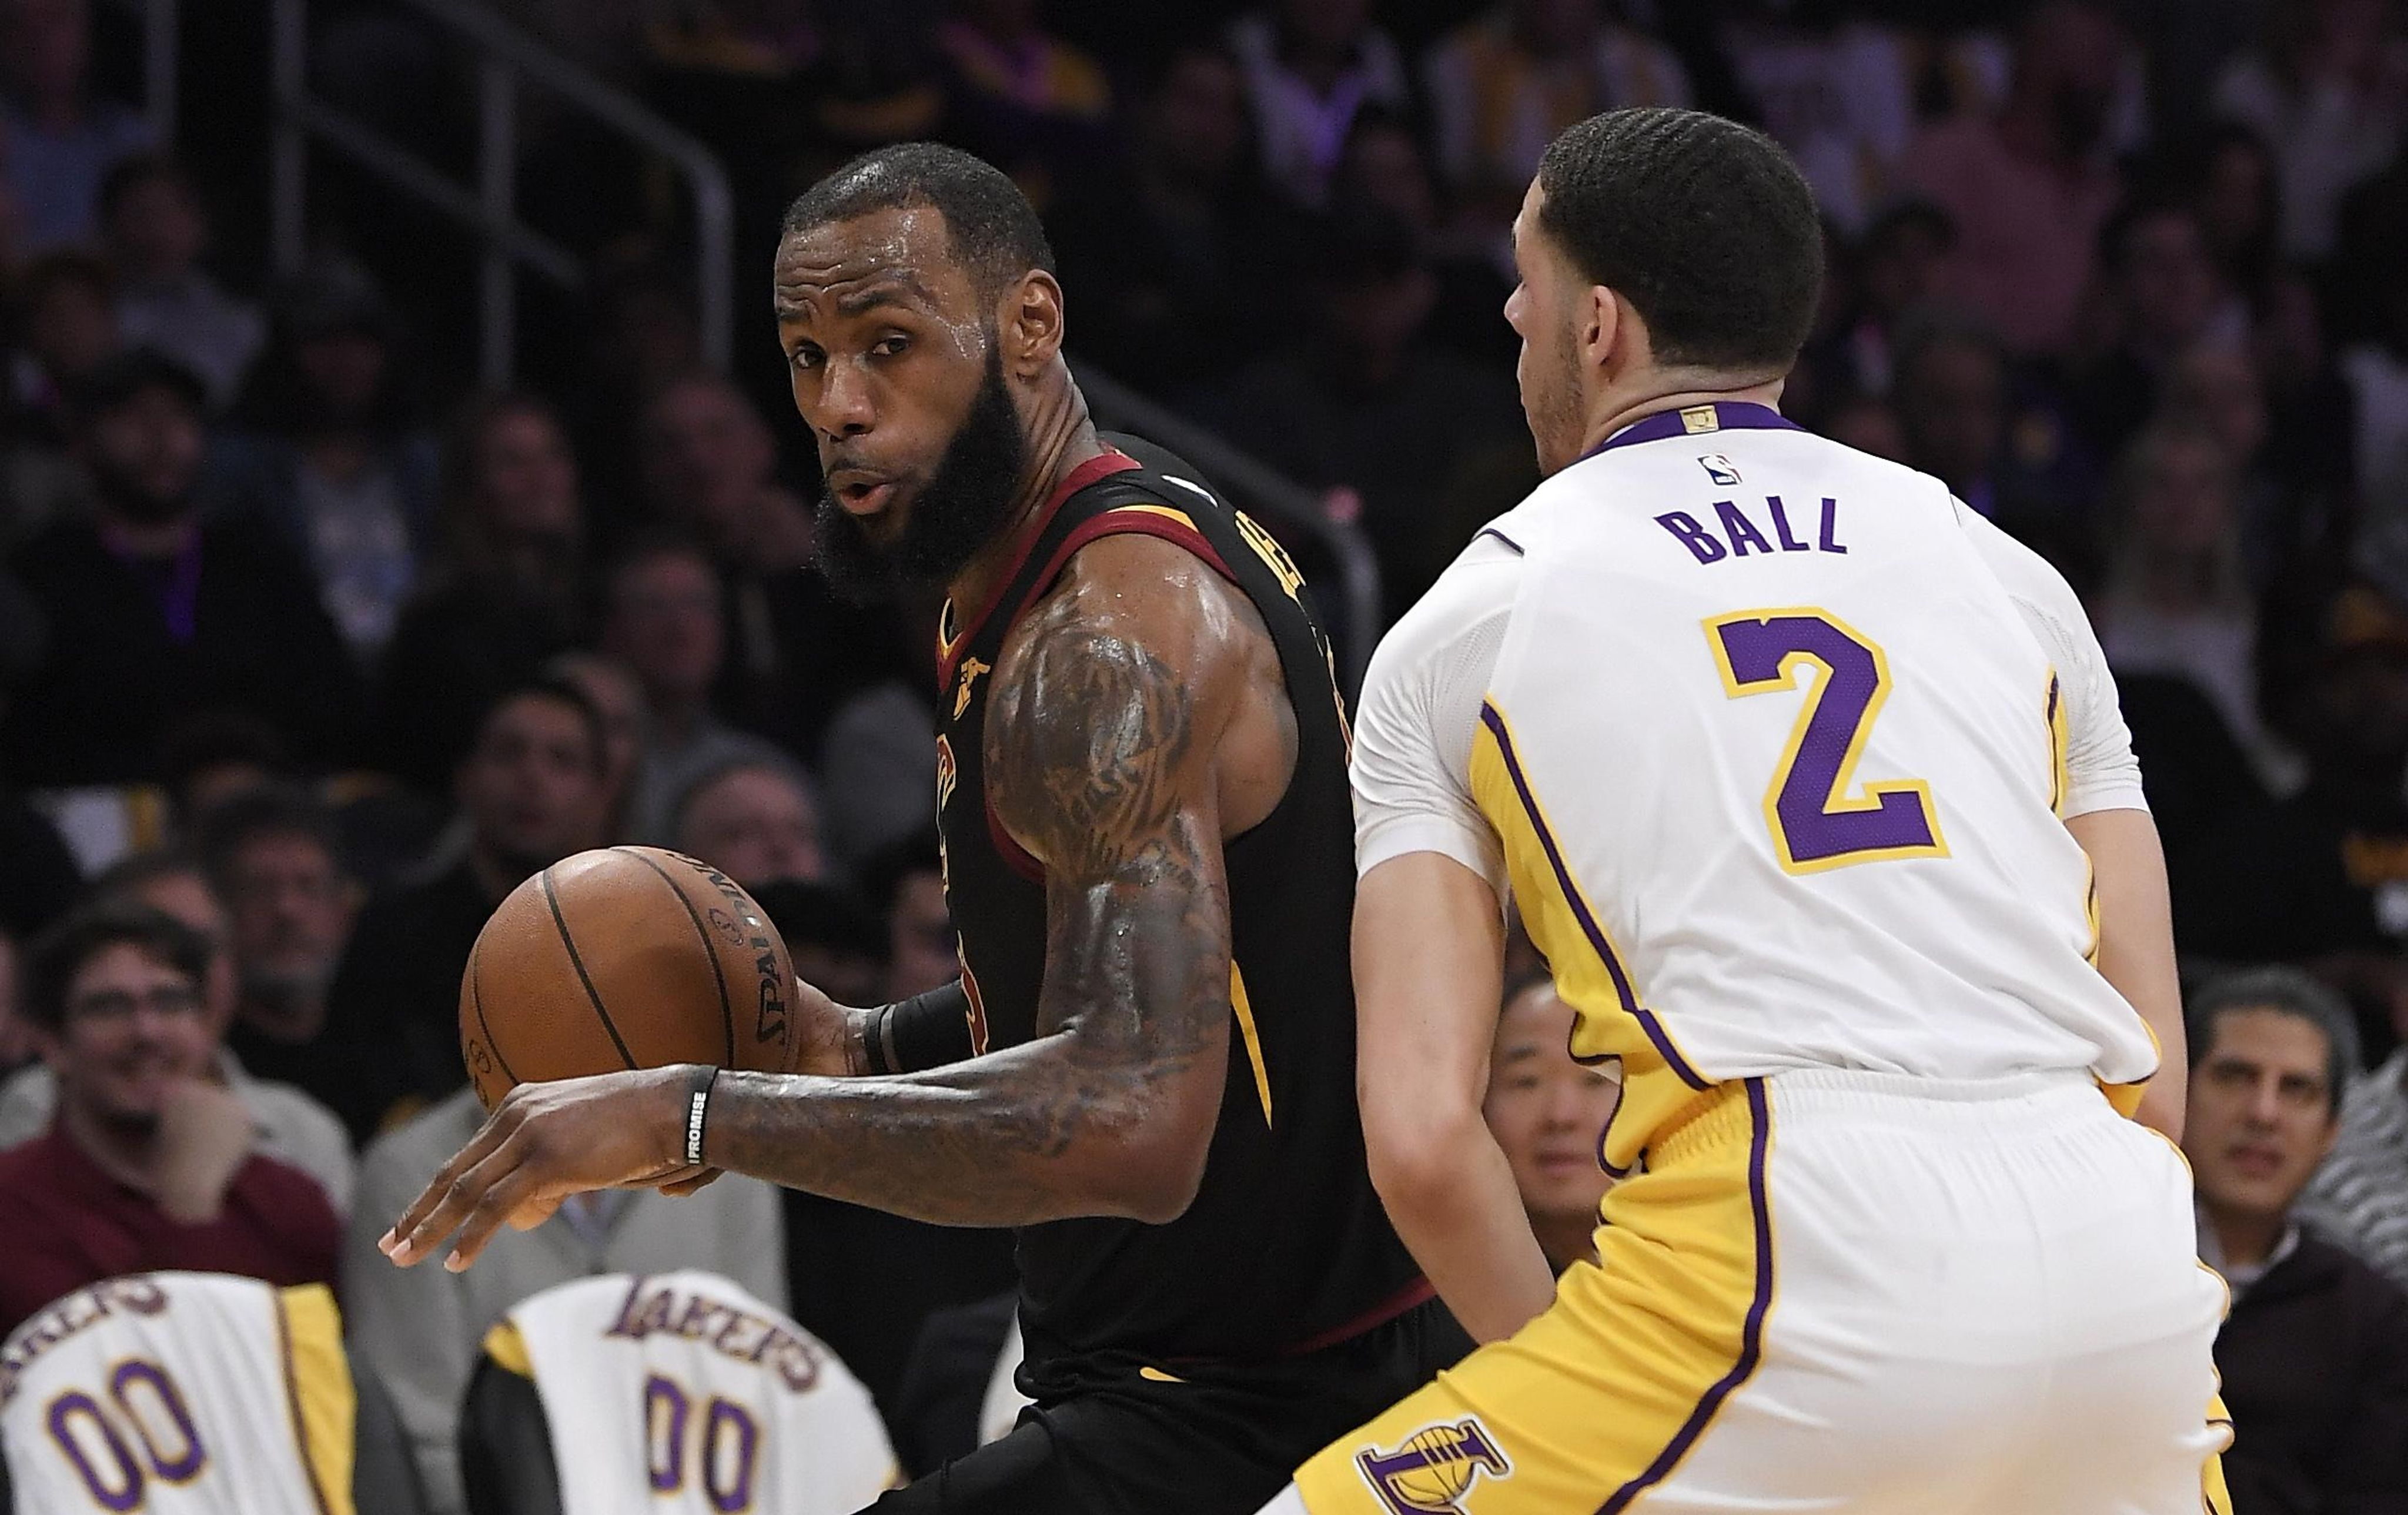 Cavaliers_lakers_basketball_04244_s4096x2577